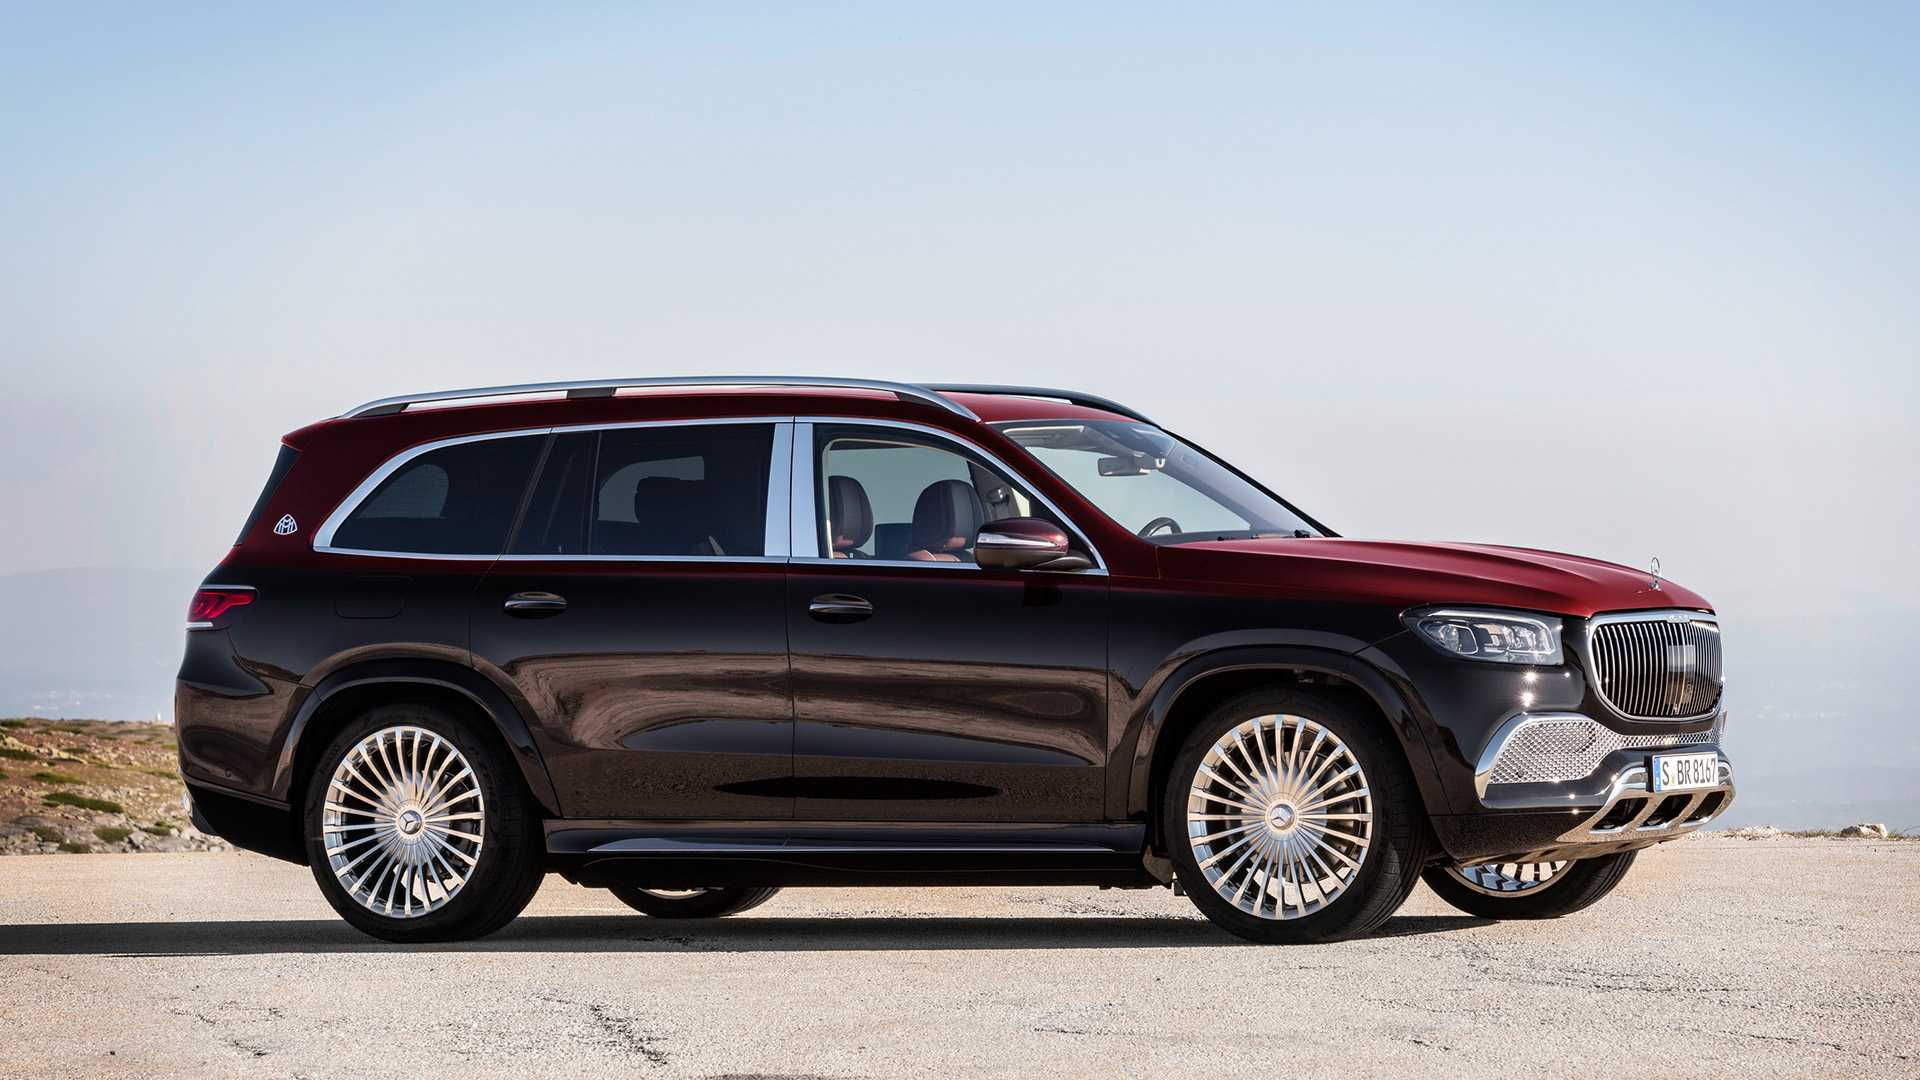 mercedes-maybach-gls-2020-7.jpg